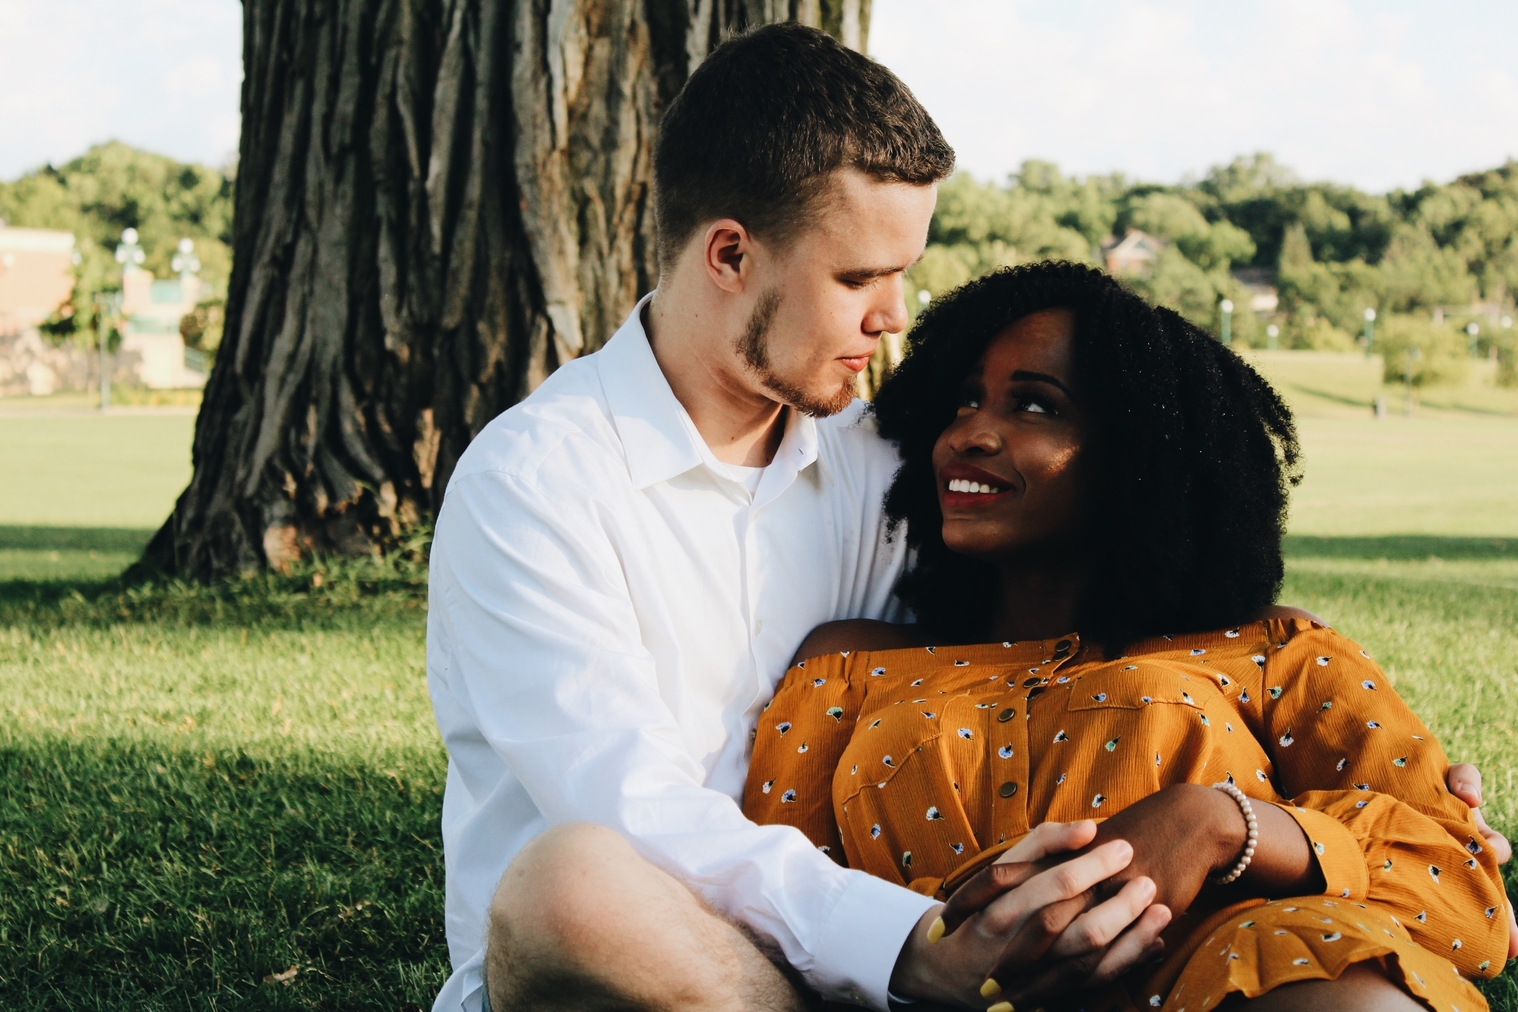 Christians against interracial dating